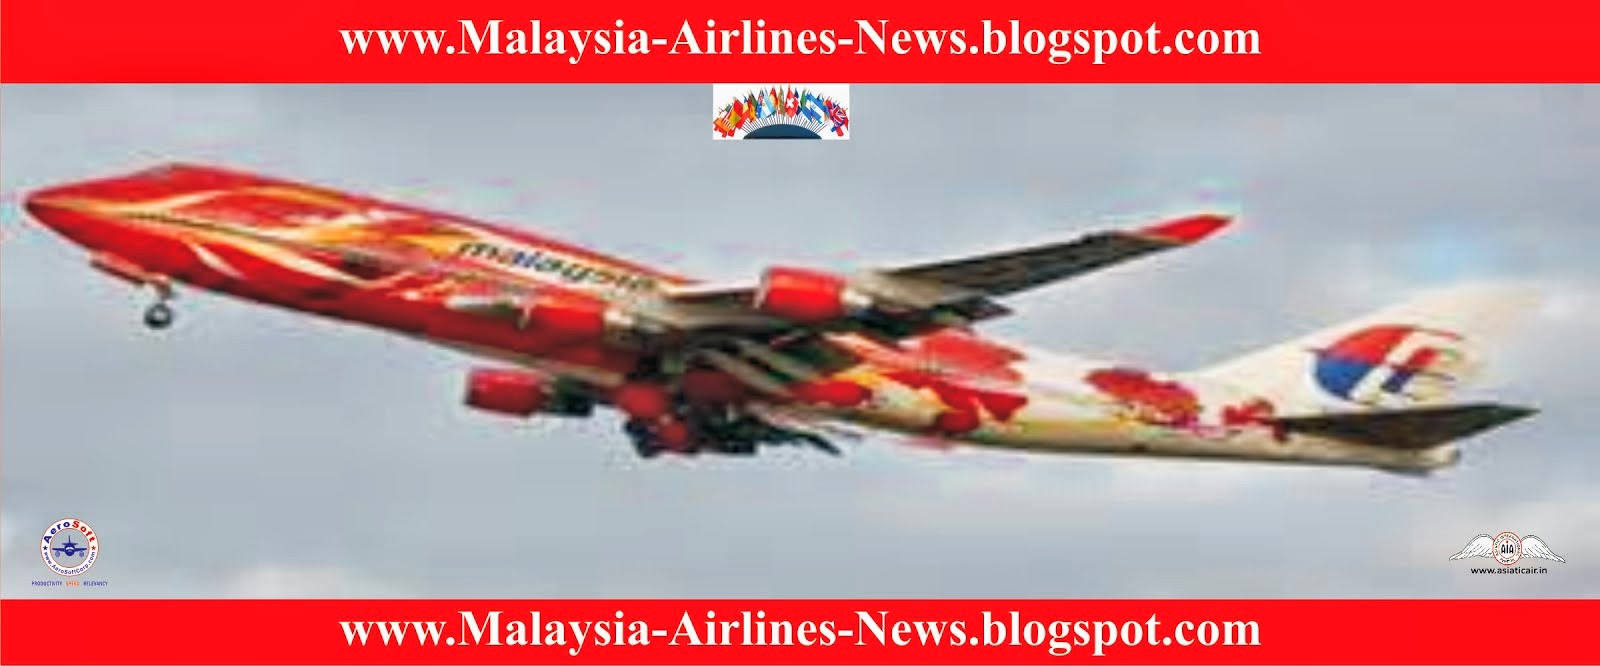 Malaysian  Airlines  News